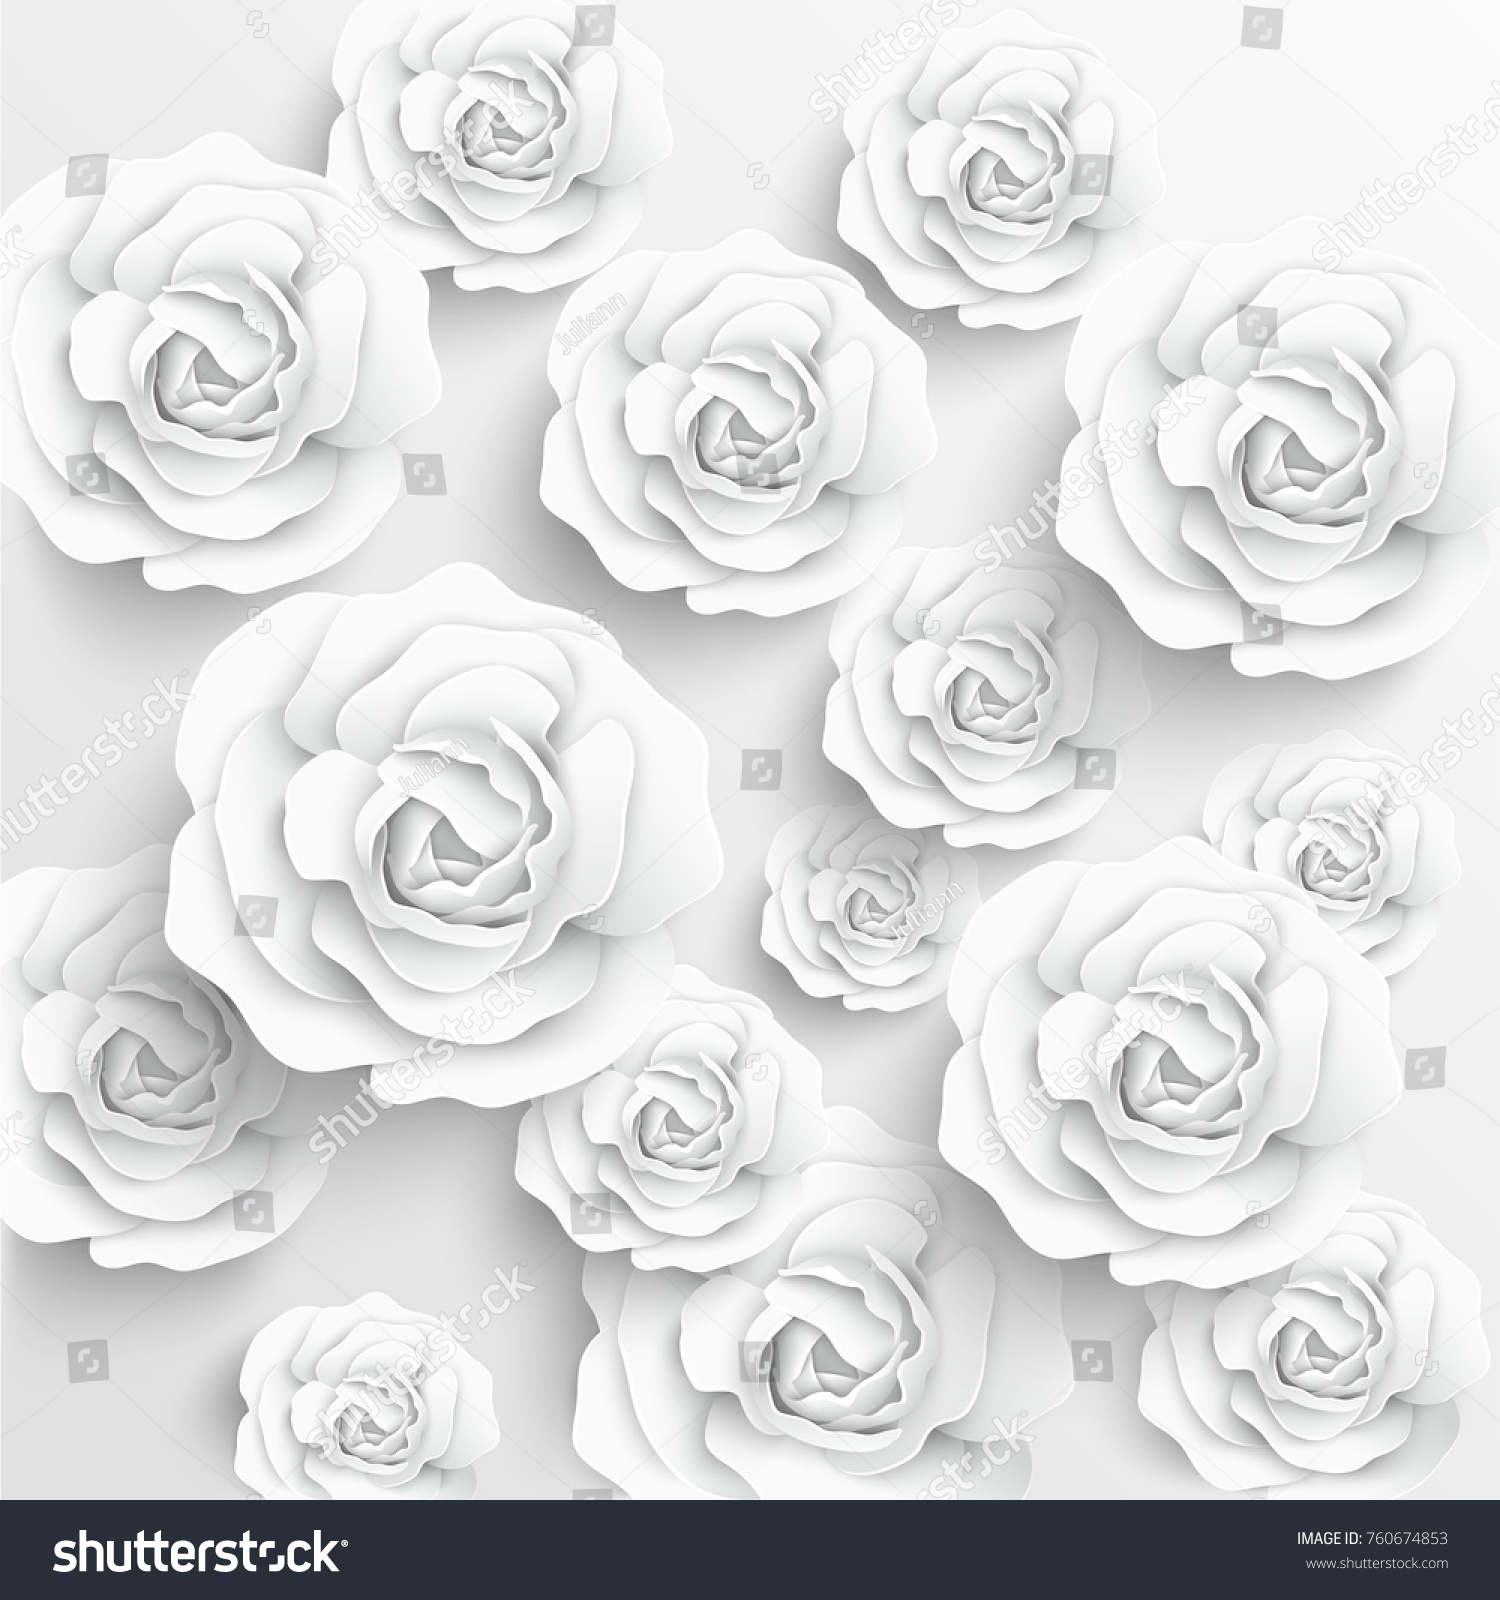 Paper Flower White Roses Cut Paper Stock Vector Royalty Free